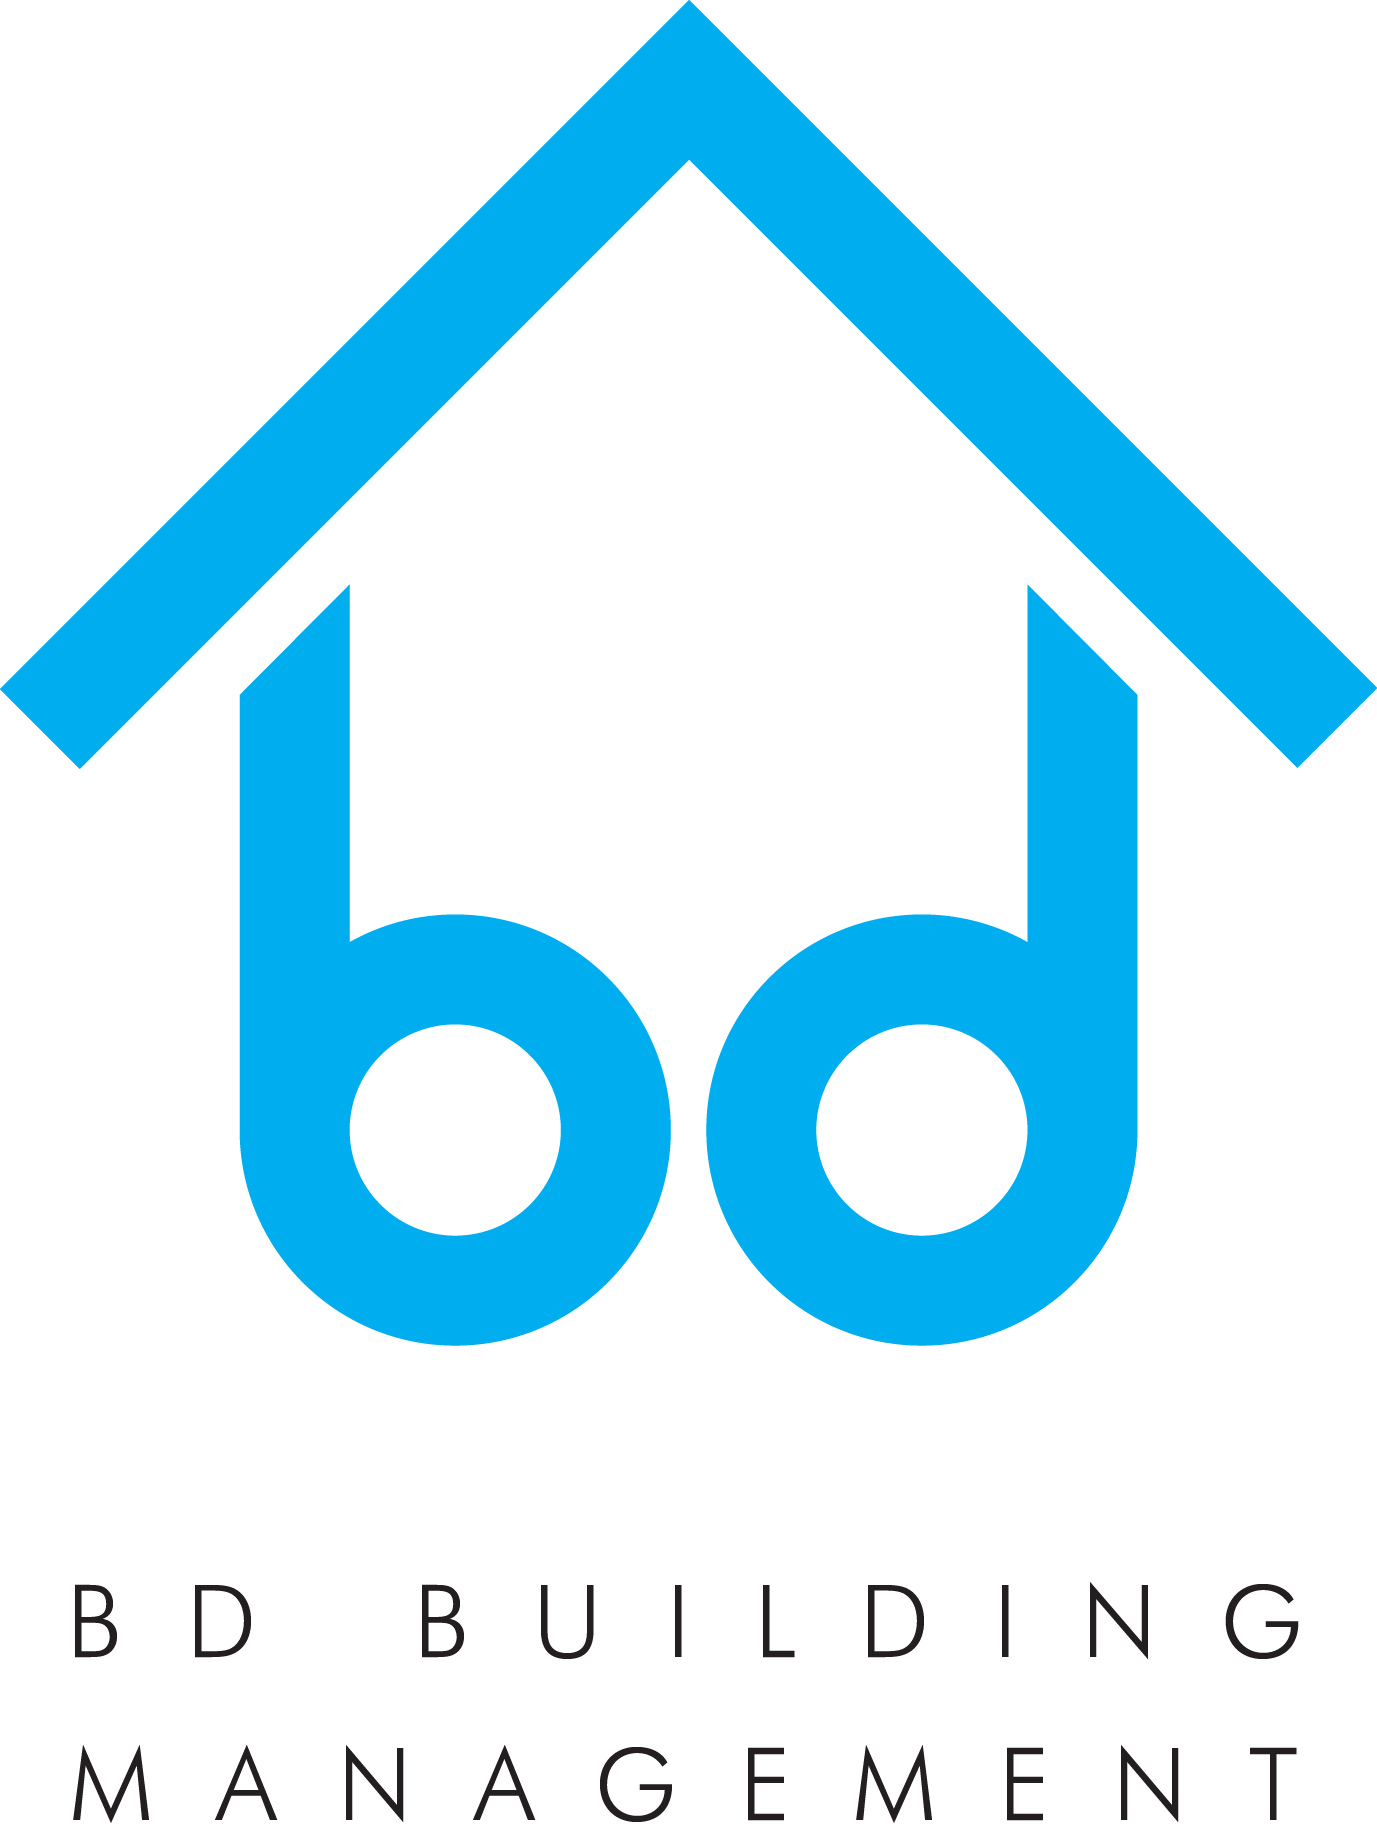 BD BUILDING MANAGEMENT